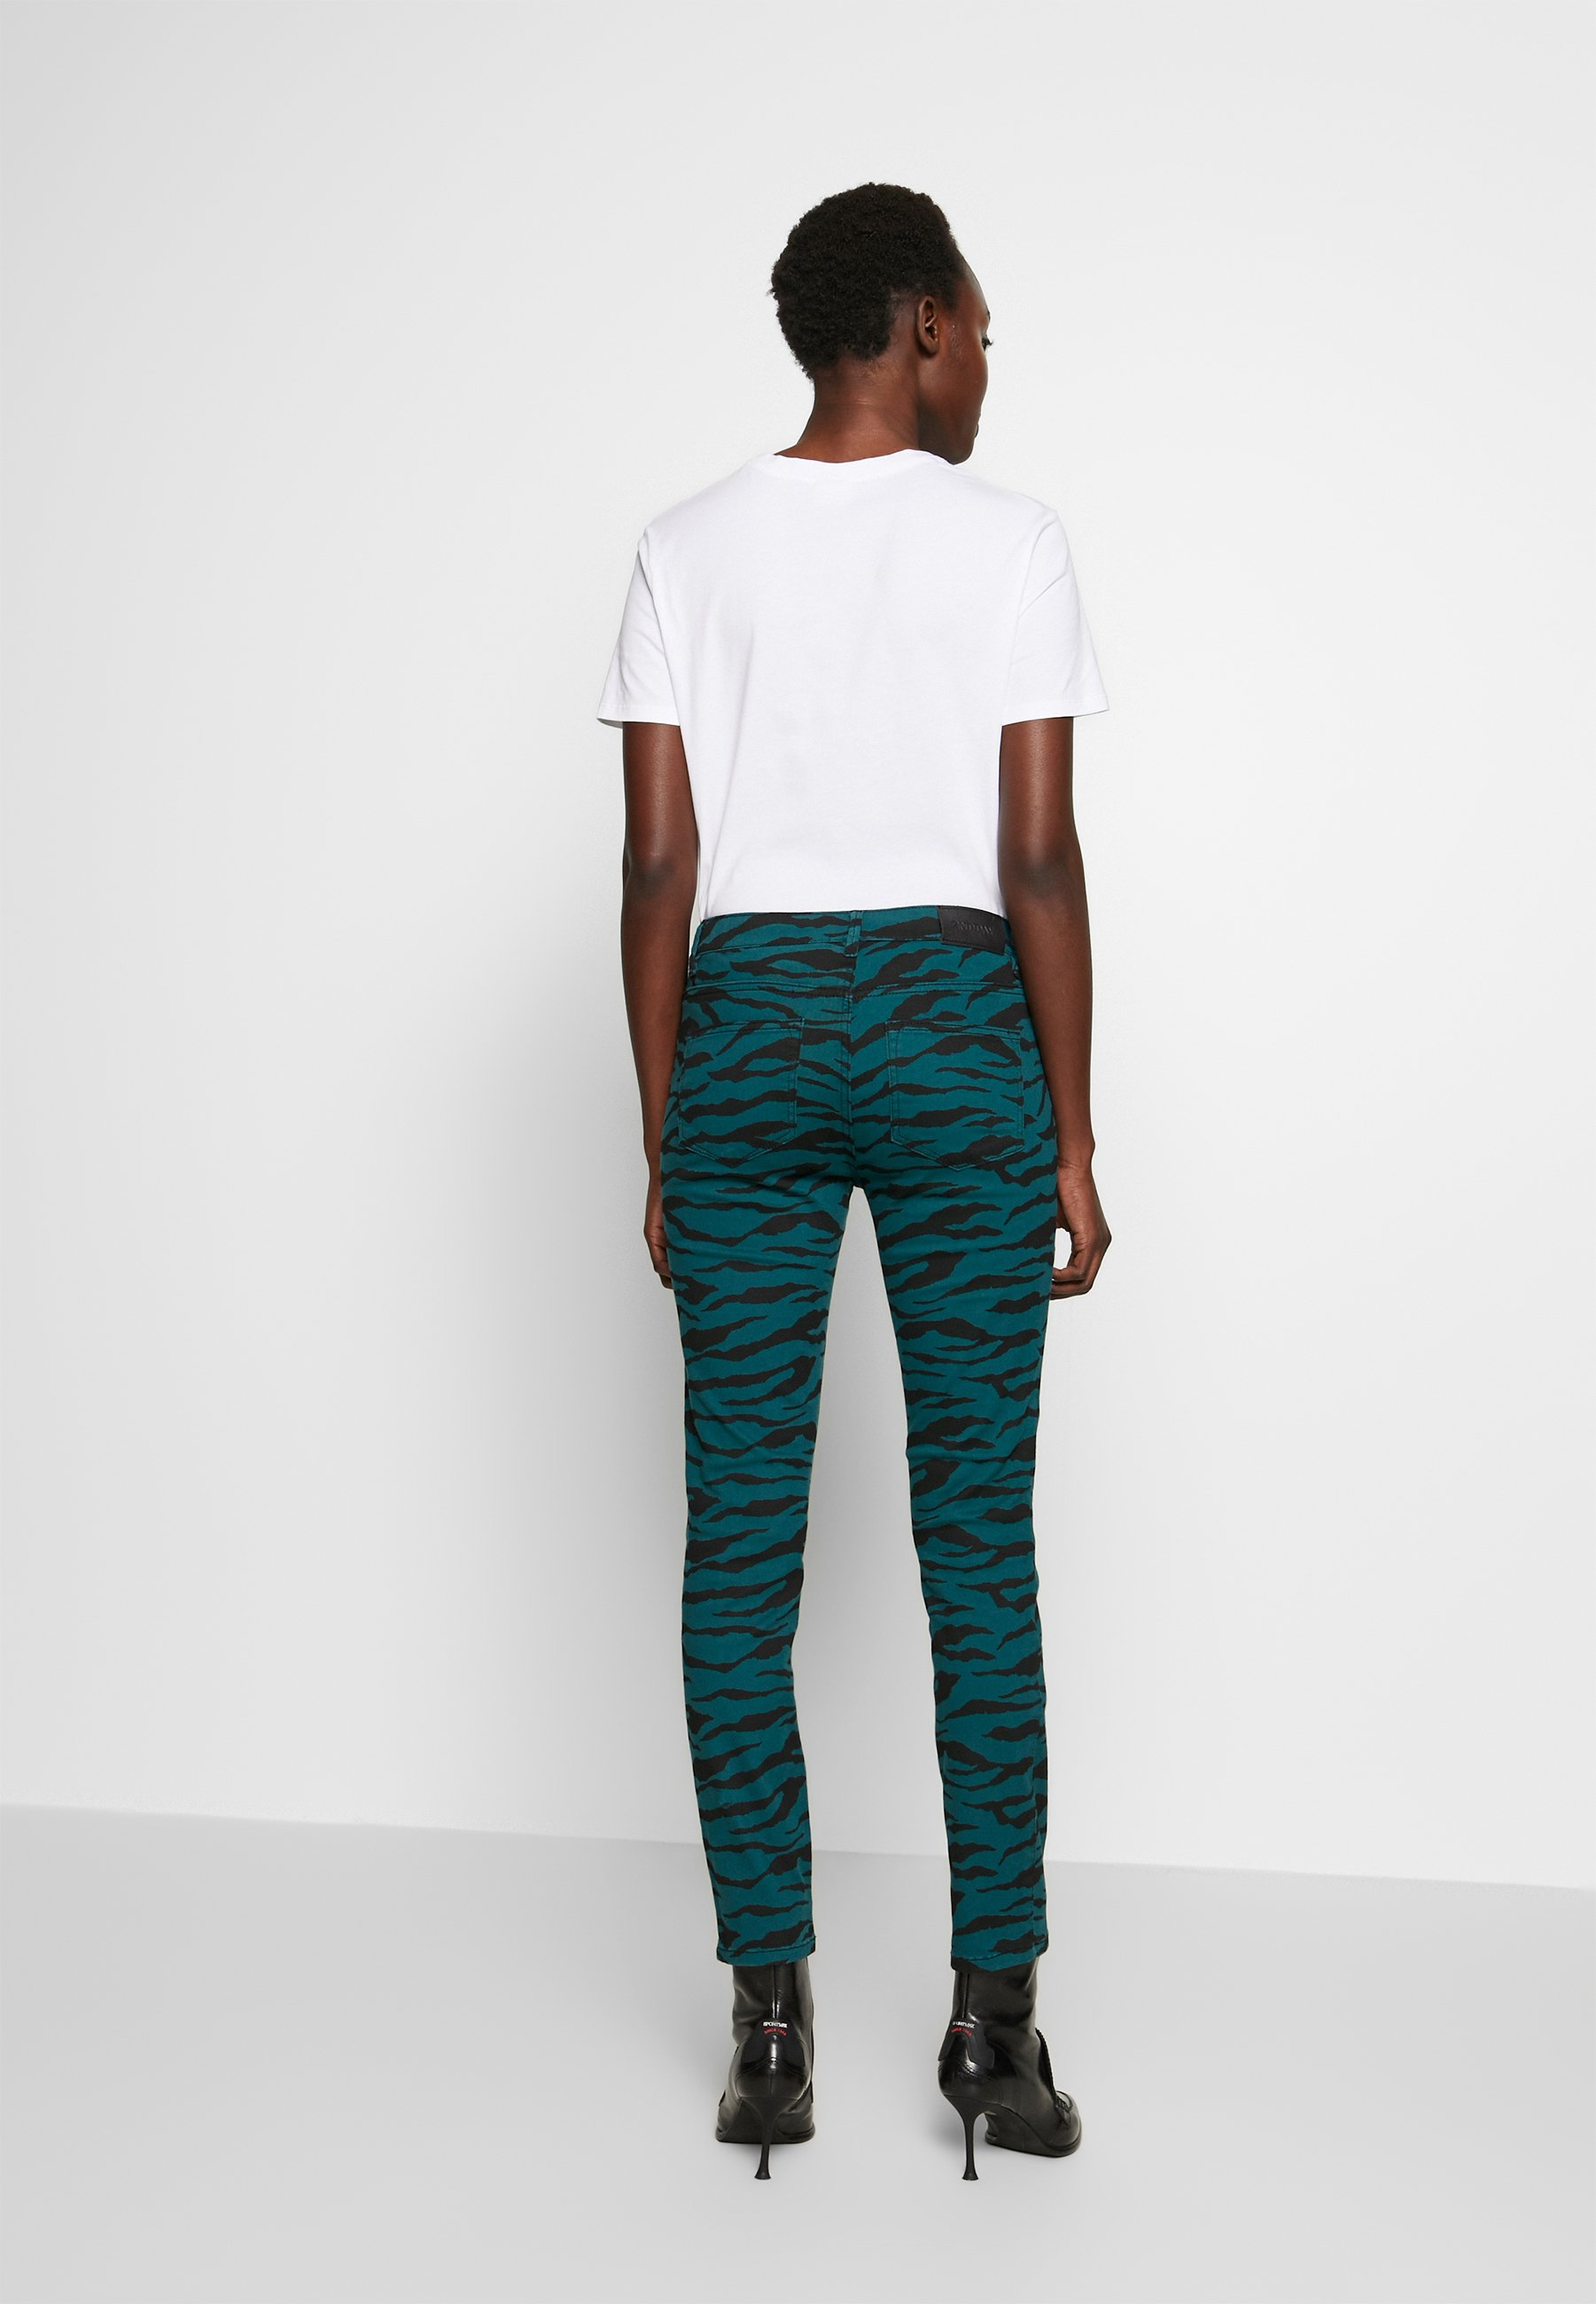 2nd Day Sally Cropped Zebra - Jeans Straight Leg Atlantic Deep